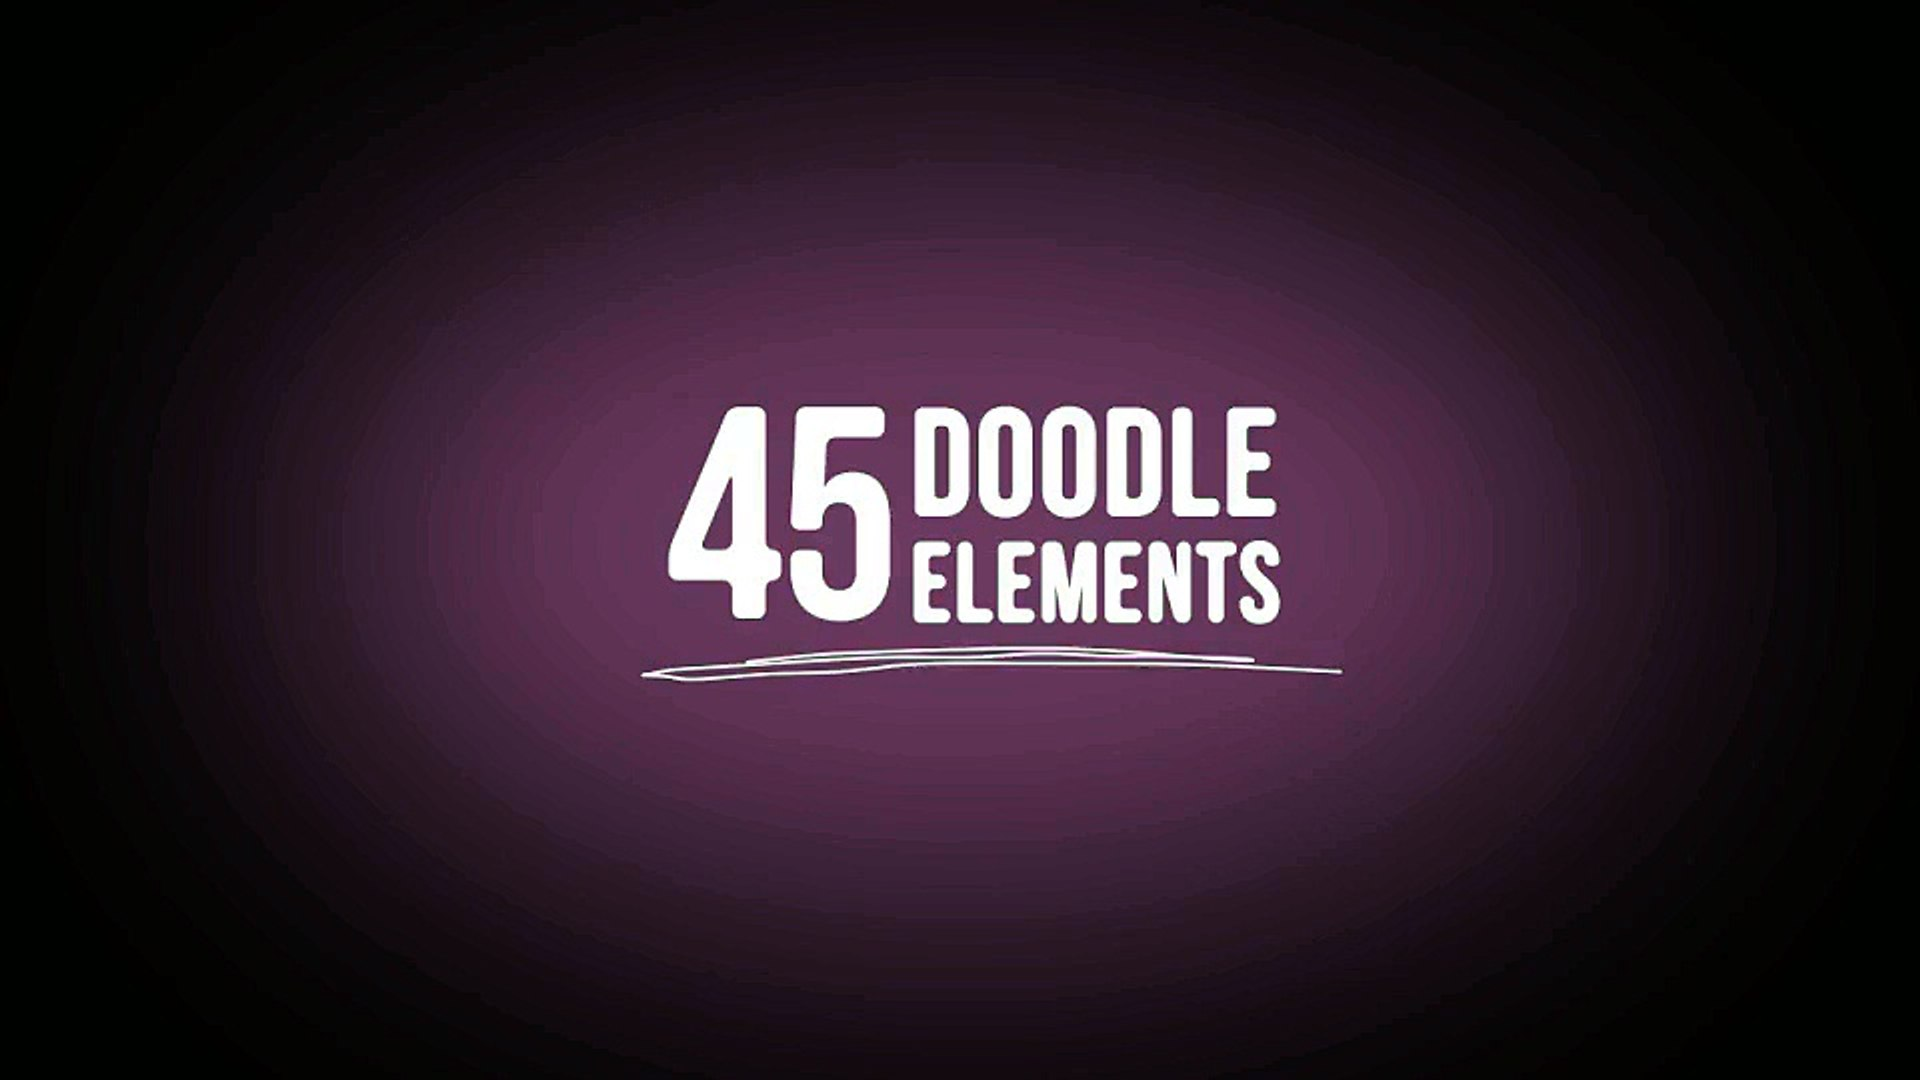 After Effects Project Files - Doodle Elements - VideoHive 9132230